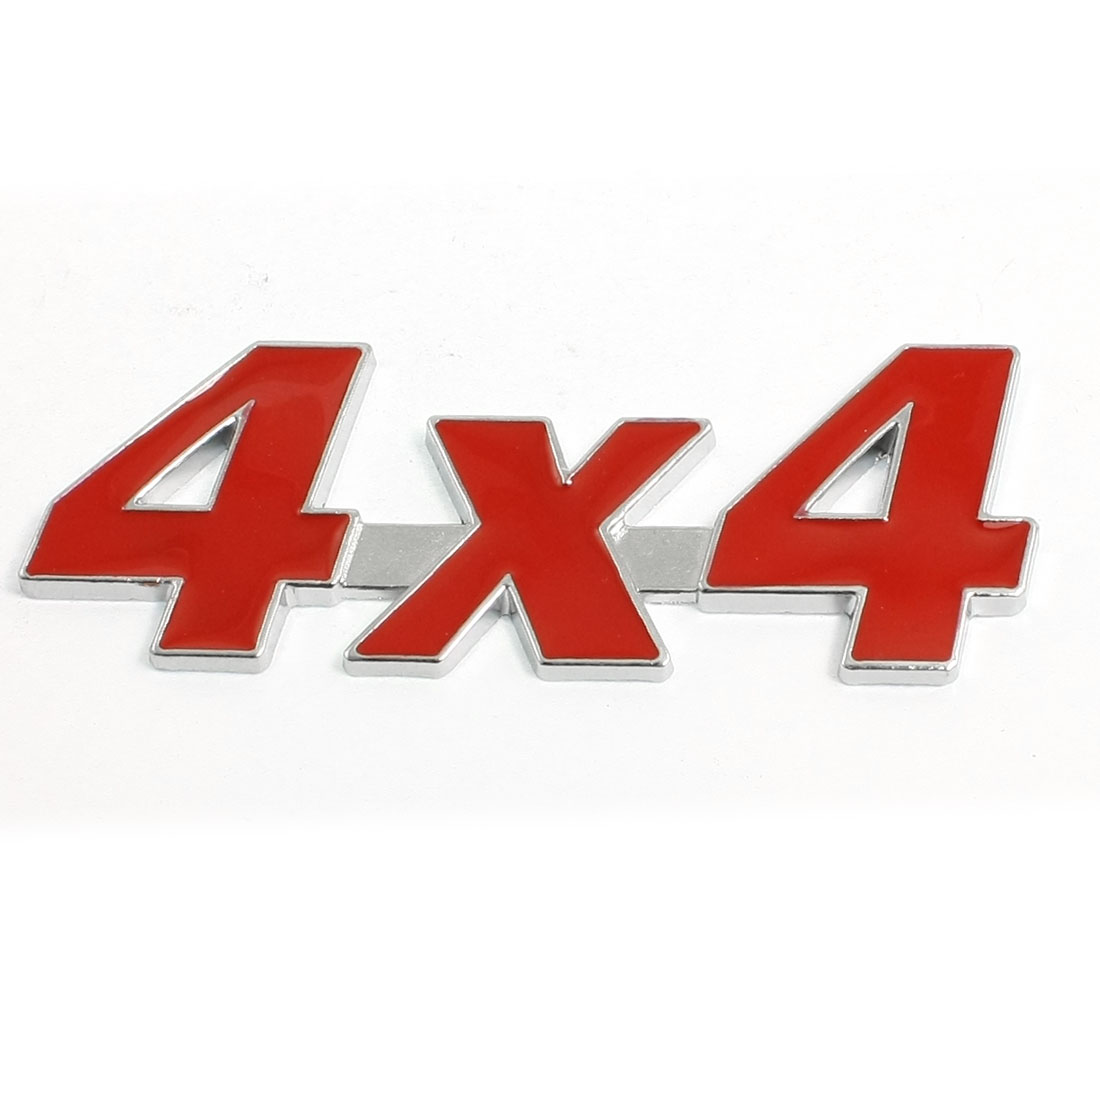 Red Metal 4X4 Pattern Decorative Car Badge Sticker Emblem Decor